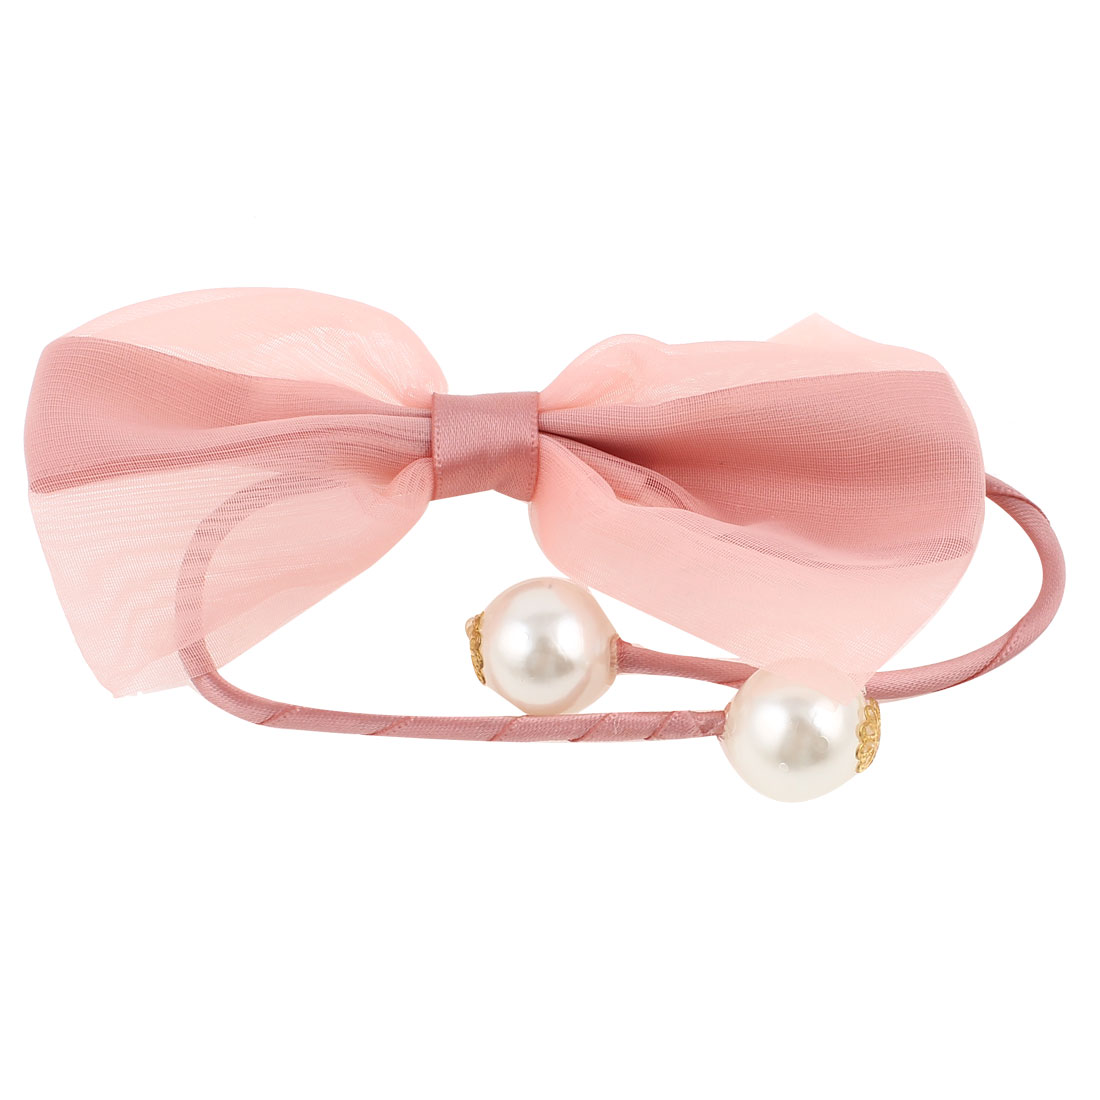 Plastic Pearl Bowtie Decor Rope DIY Wire Hair Band Tie Bracelet Flesh Pink